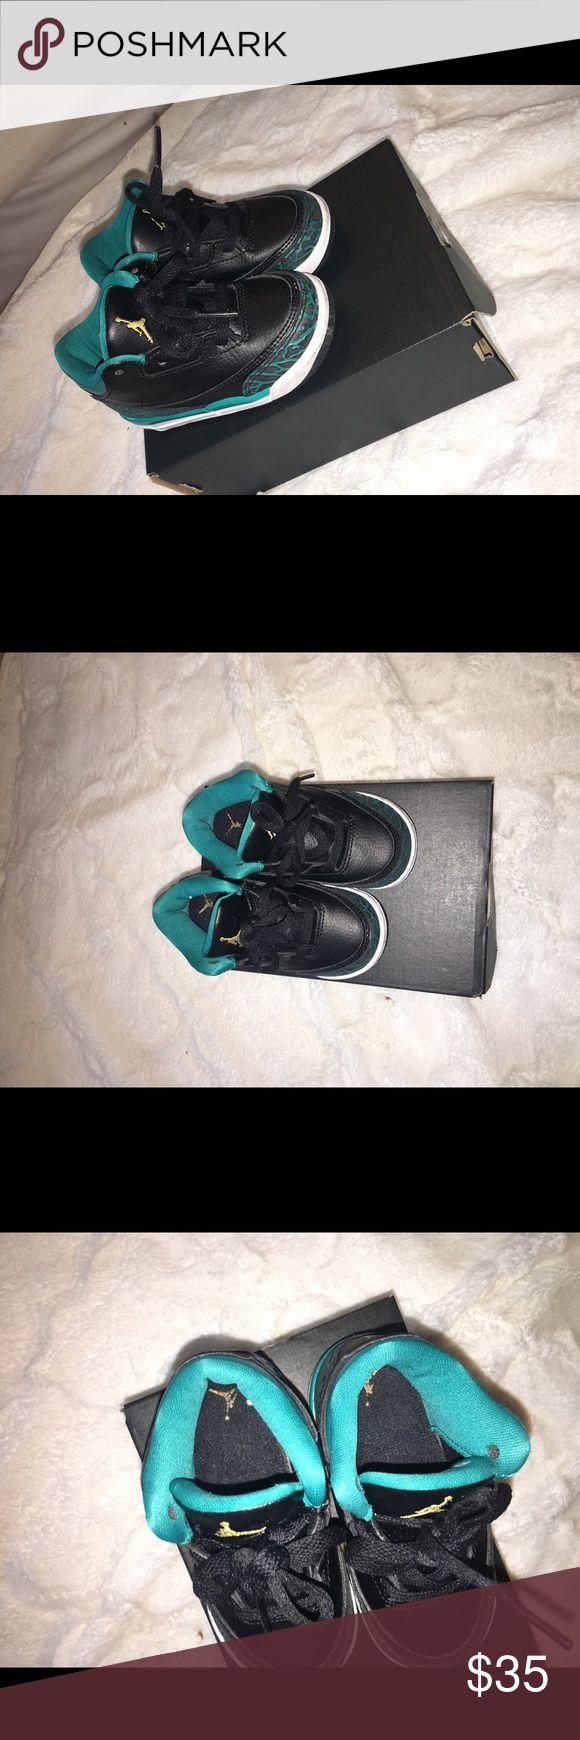 Toddler Jordans size 6c These are Jordan 3 retro GT. Worn a decent amount of times but not much. In good condition and comes with original box. Air Jordan Shoes Sneakers